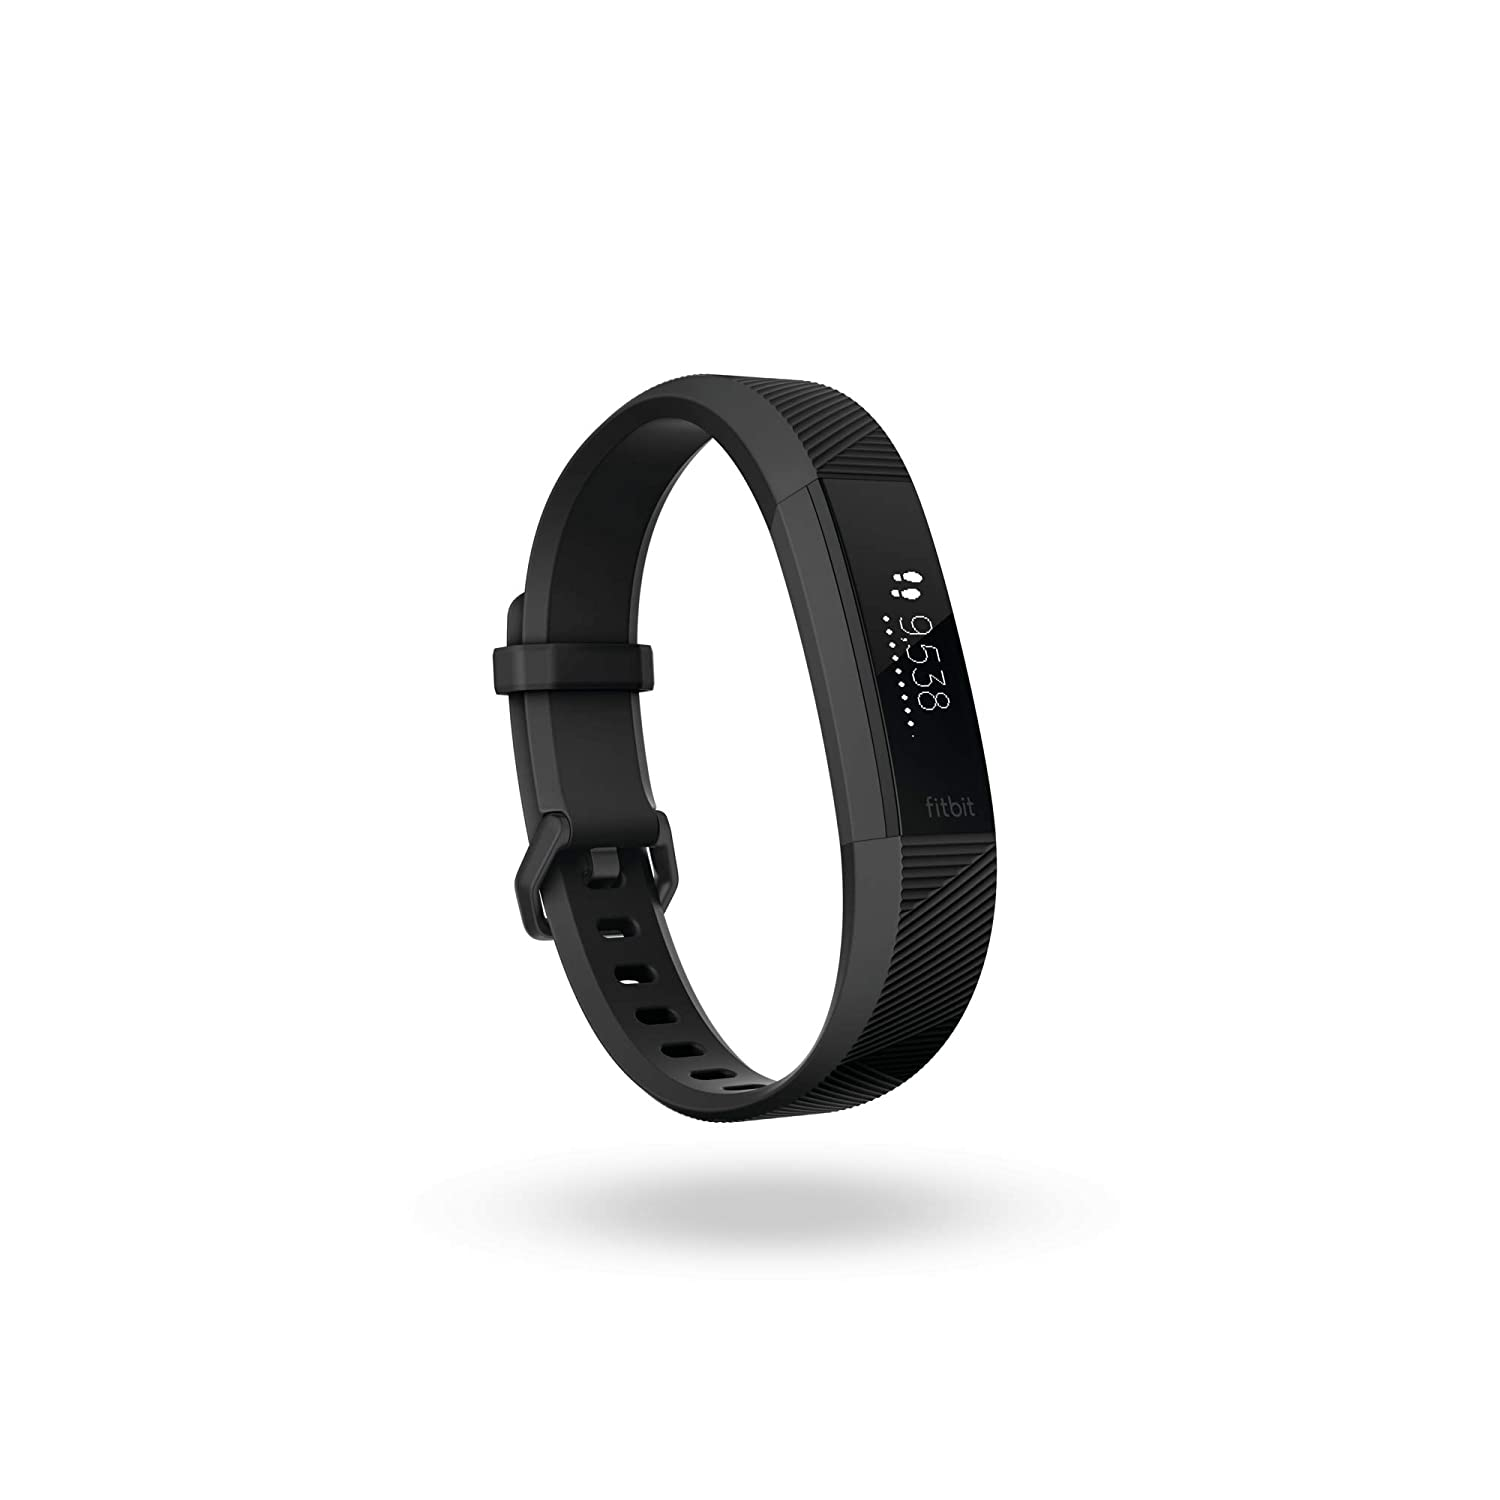 [amazon.de] Fitbit Alta HR za 79,99€ umjesto 87,90€